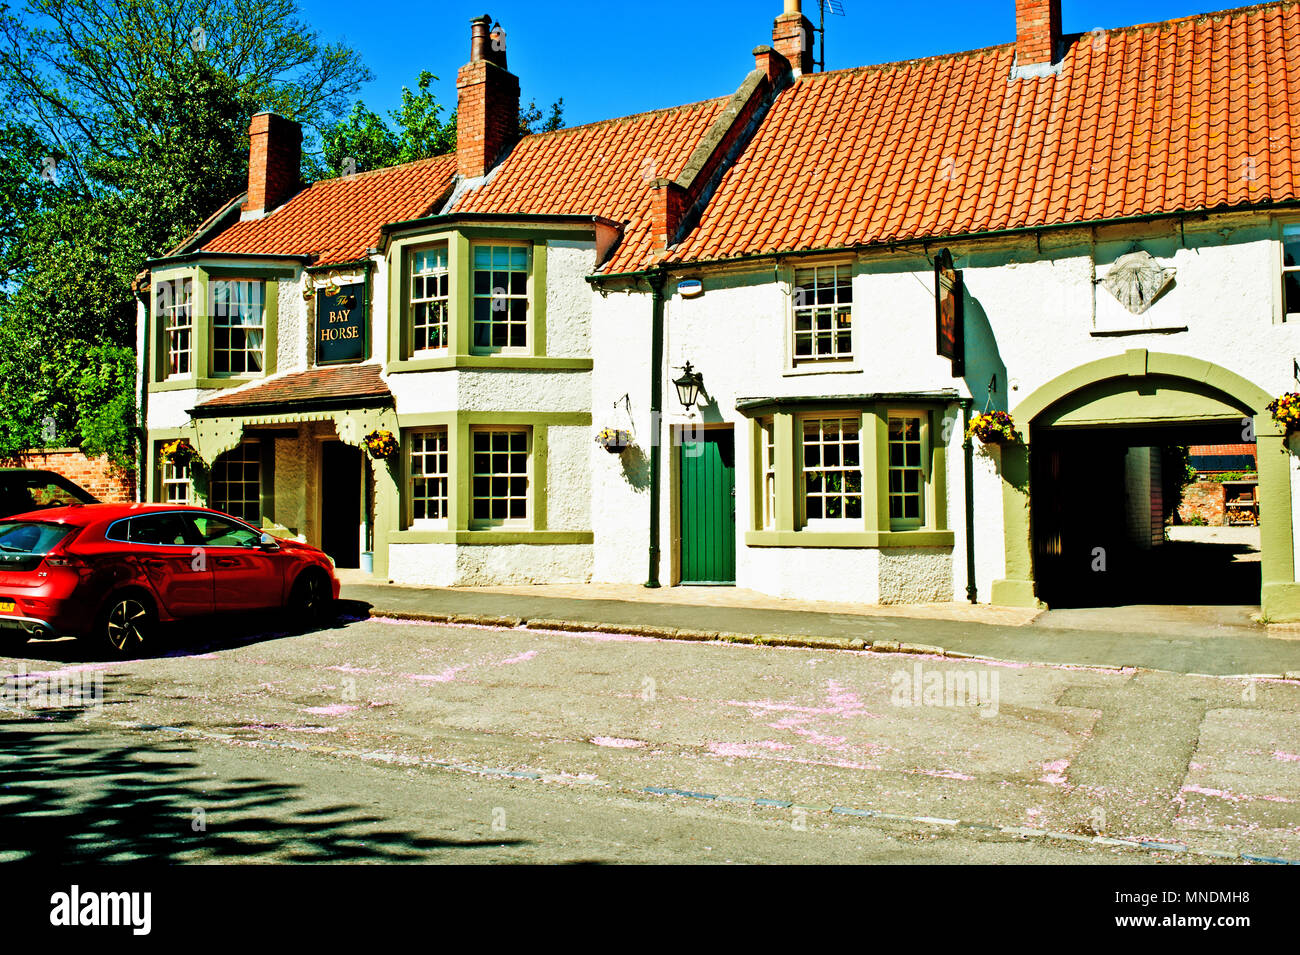 The Bay Horse, Hurworth on the Tees, borough of Darlington, County Durham - Stock Image